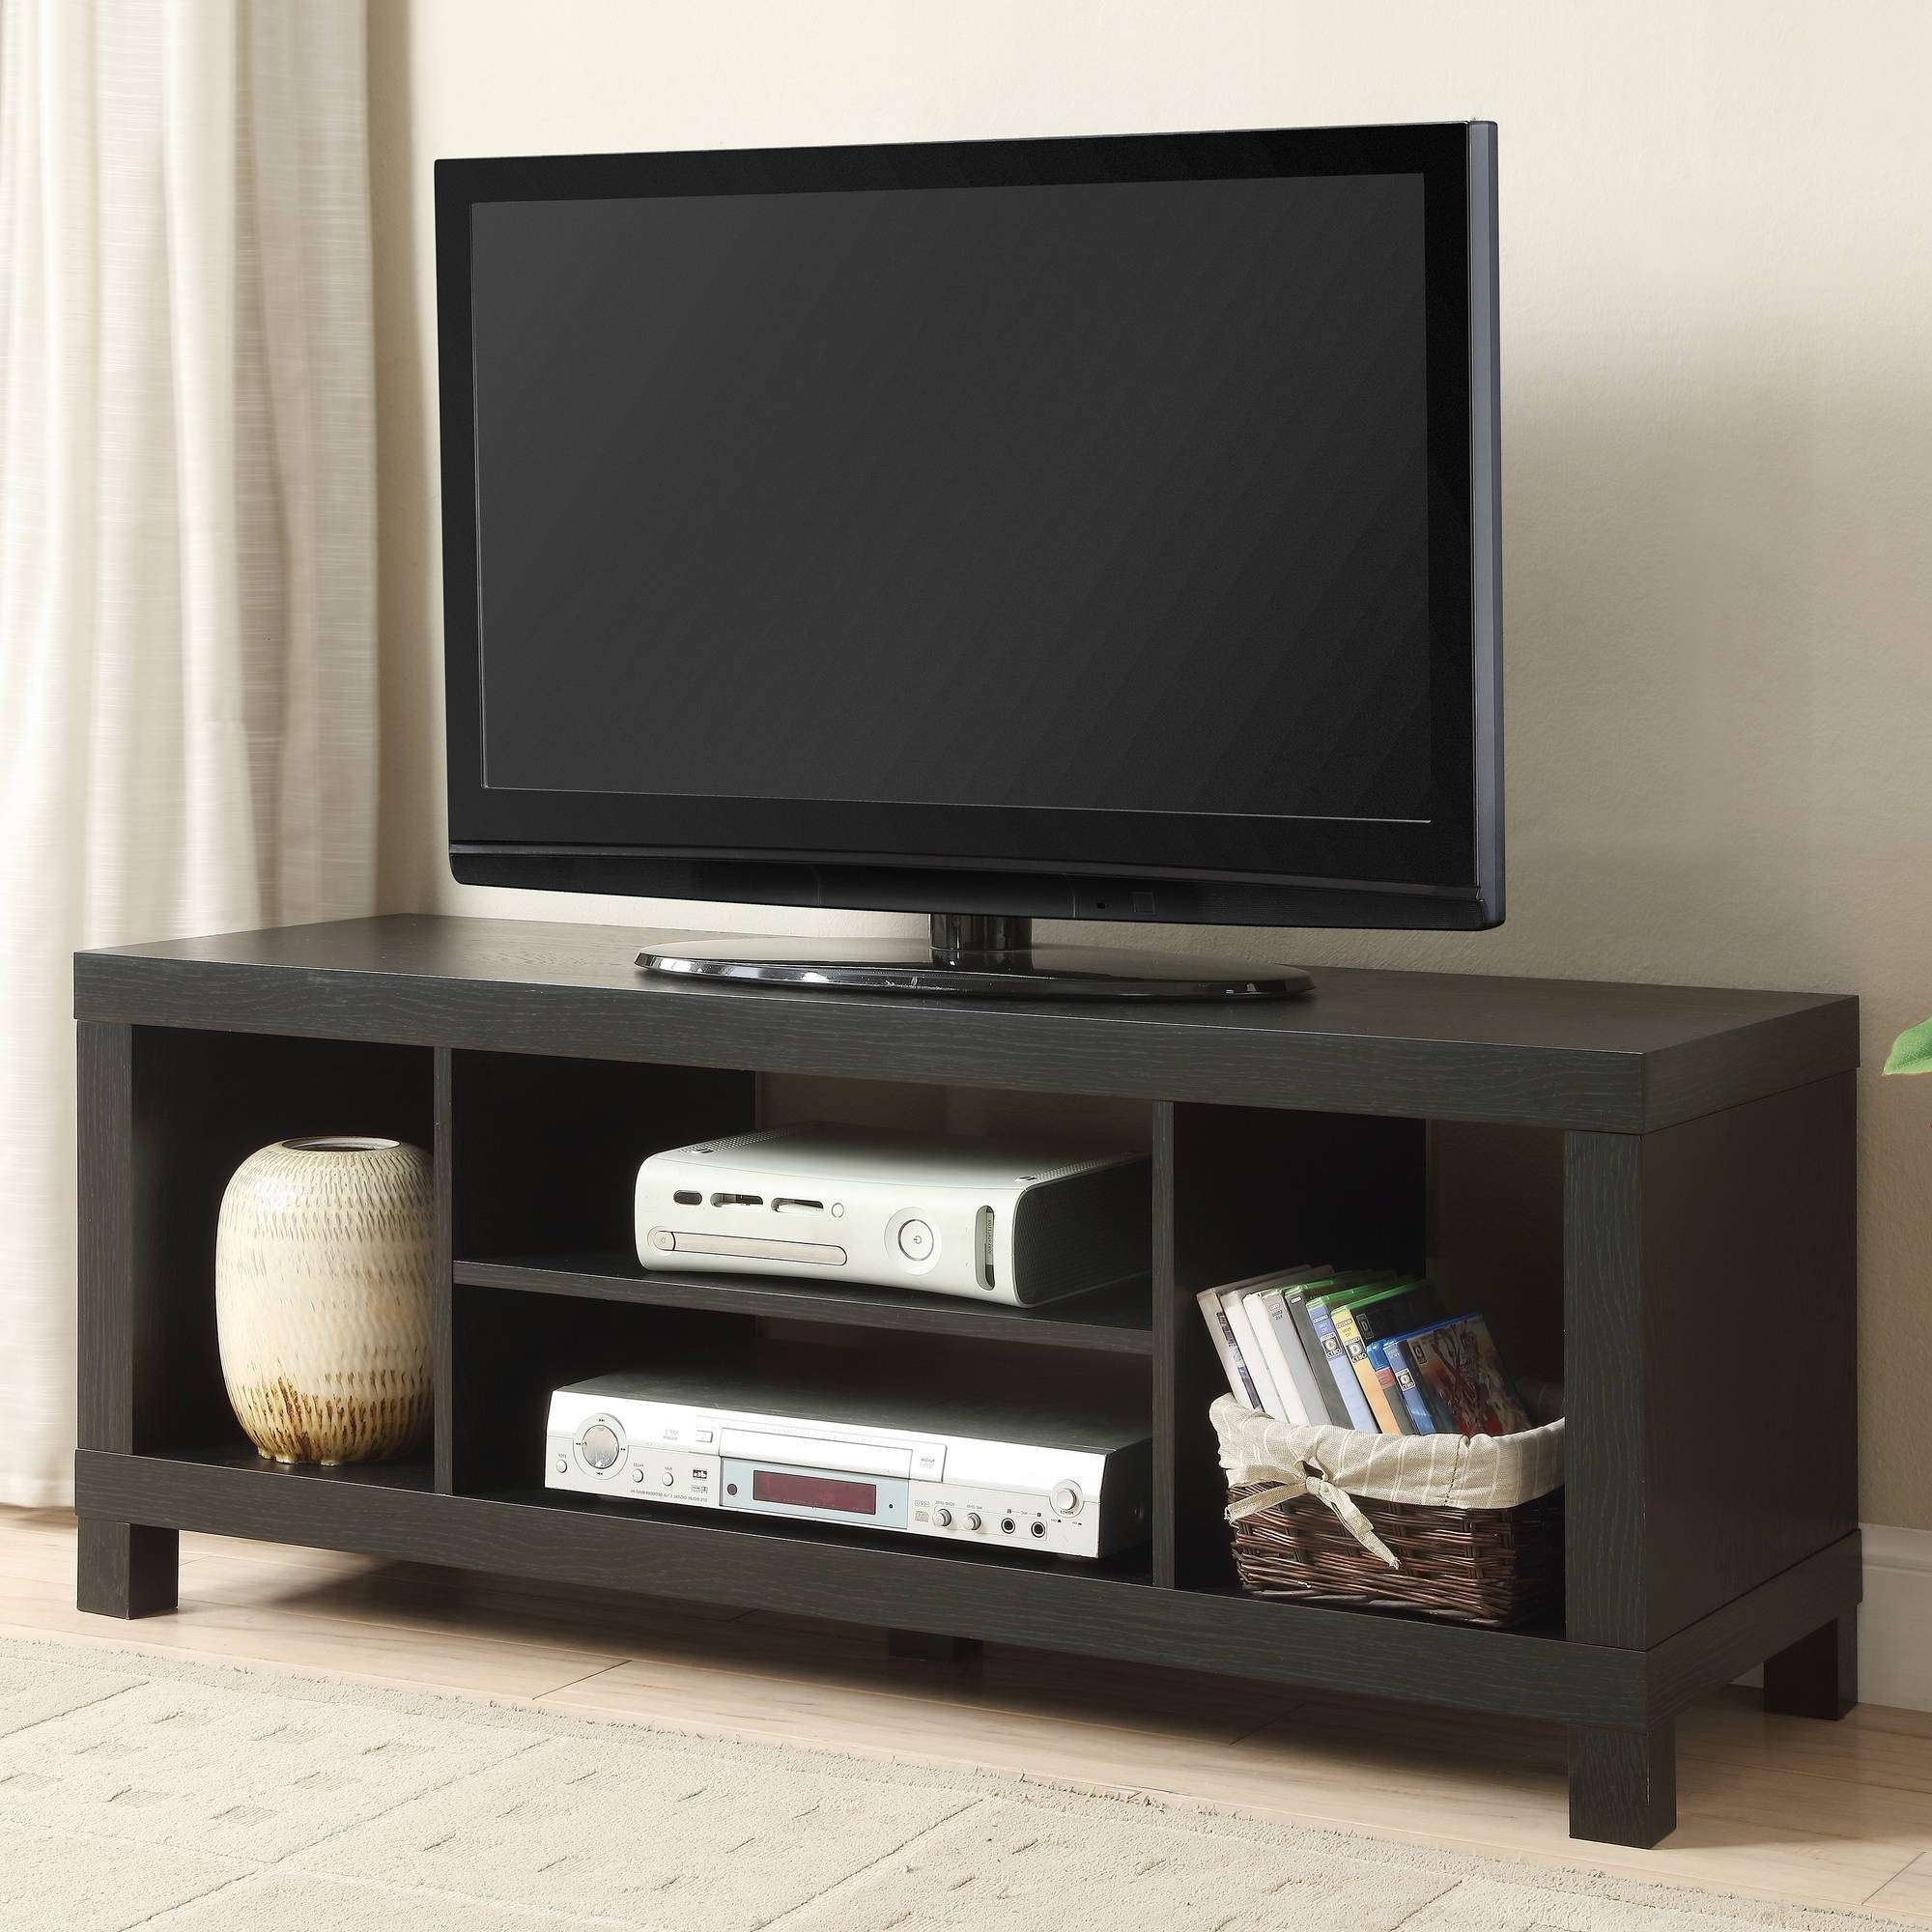 Tv Stands – Walmart Intended For Stand And Deliver Tv Stands (View 18 of 20)